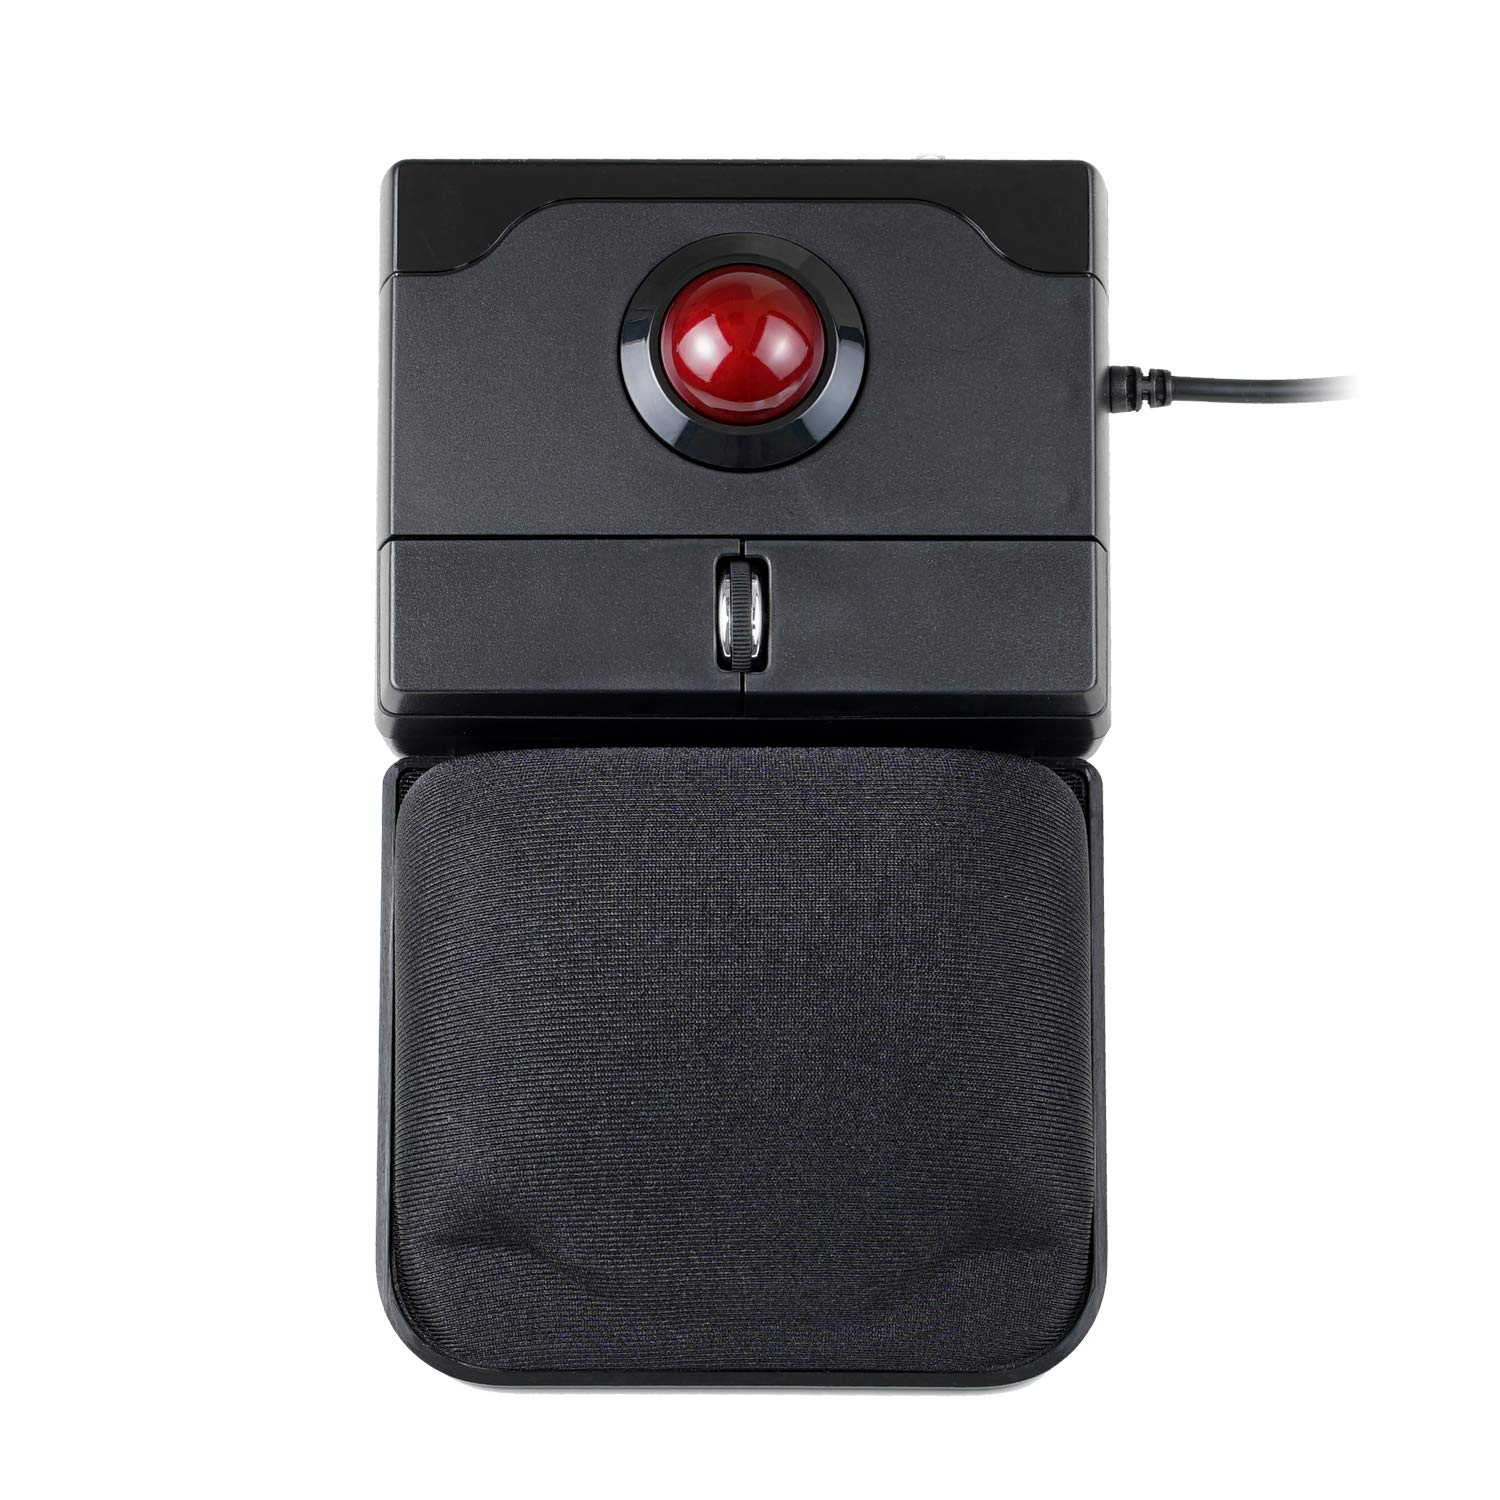 Perixx PERIPRO-506 Wired USB Trackball Mouse, Build-in 0.98 Inch Trackball for The Pointing Feature, Detachable Gel Palm Rest by Perixx